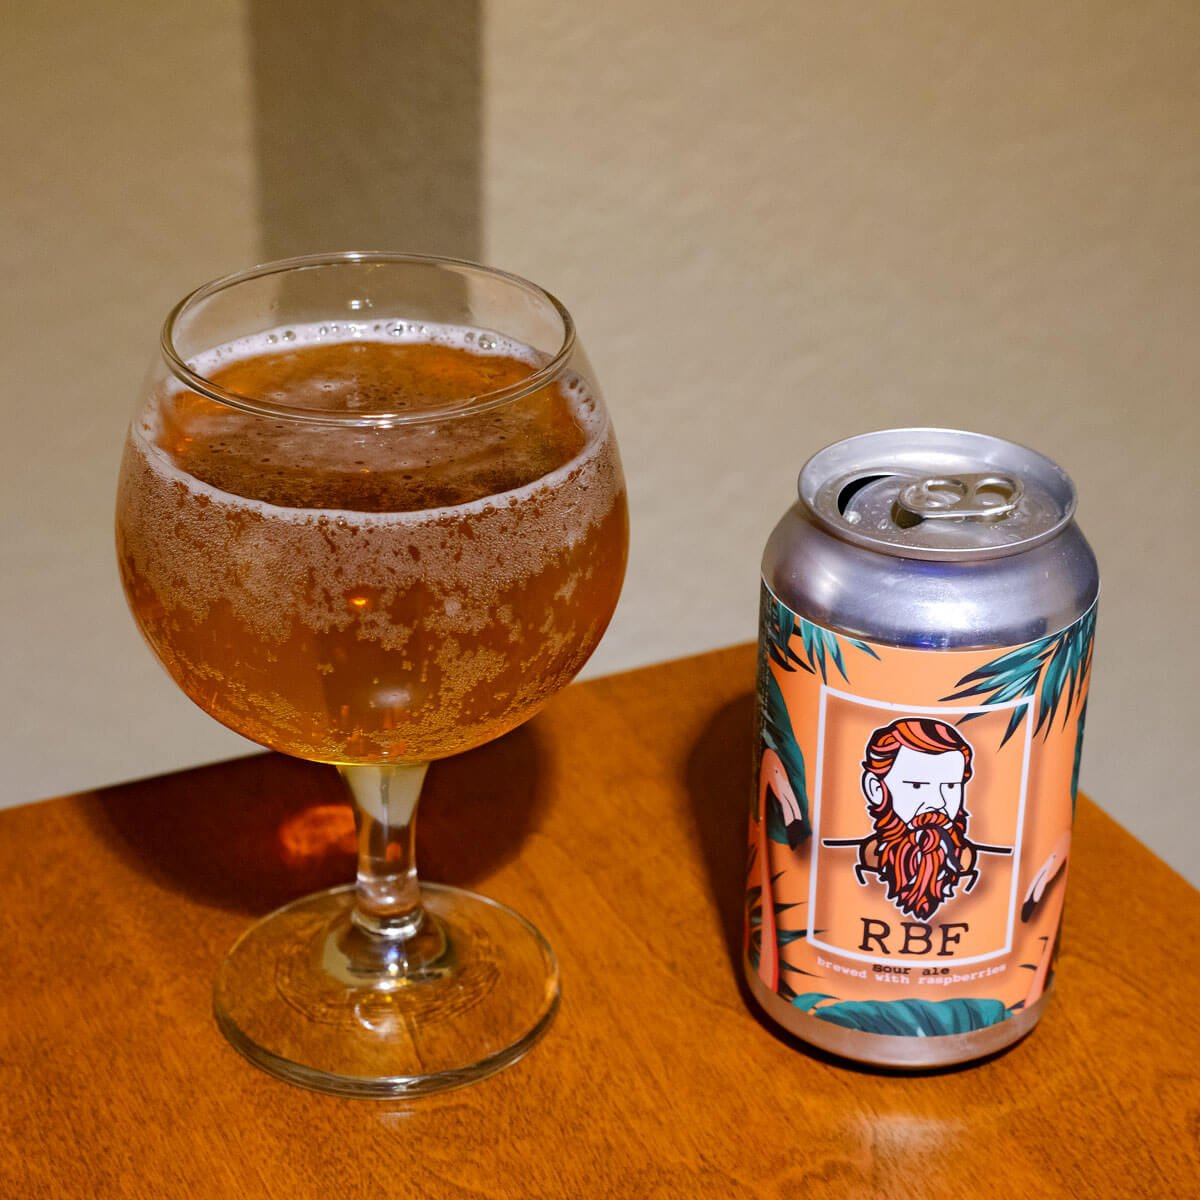 RBF Raspberry Sour Ale, a German-style Gose by The Larimer Beer Company